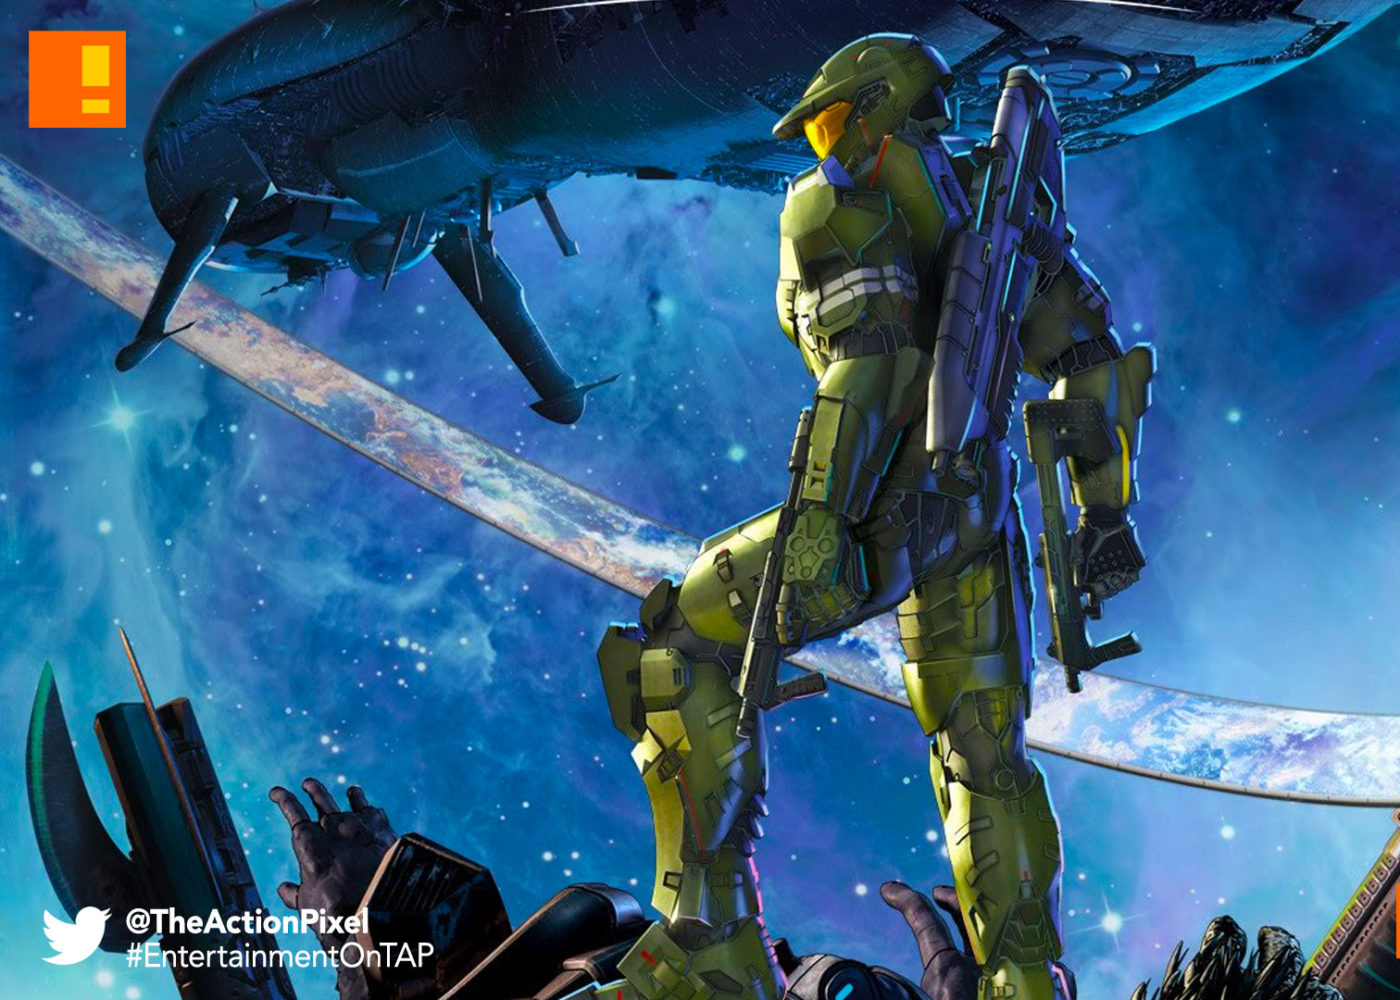 halo legends, halo , 343 industries, the action pixel, entertainment on tap, vod,